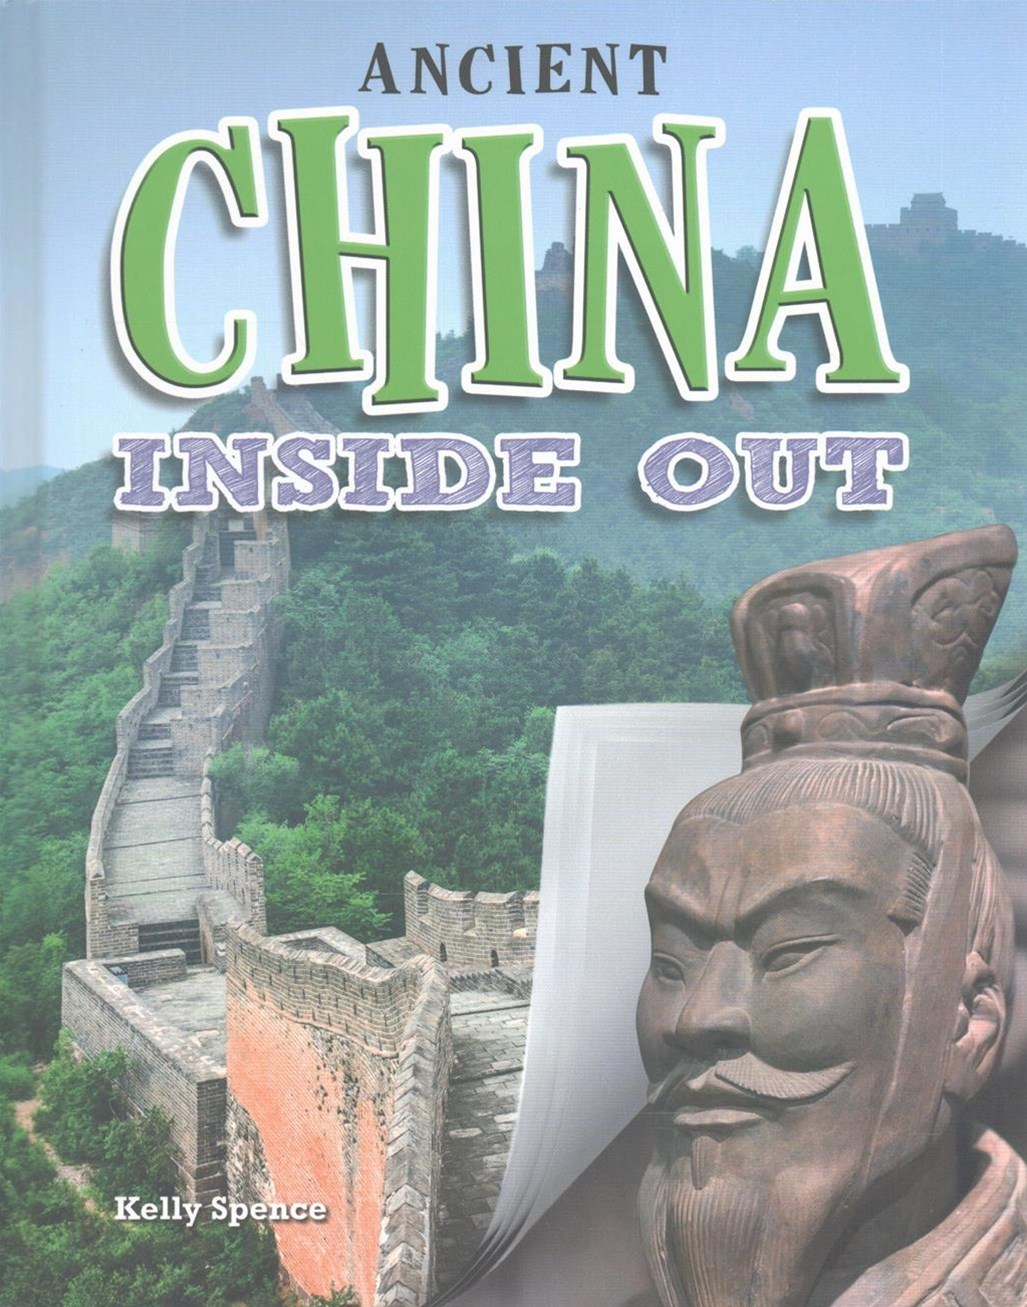 Ancient China Inside Out